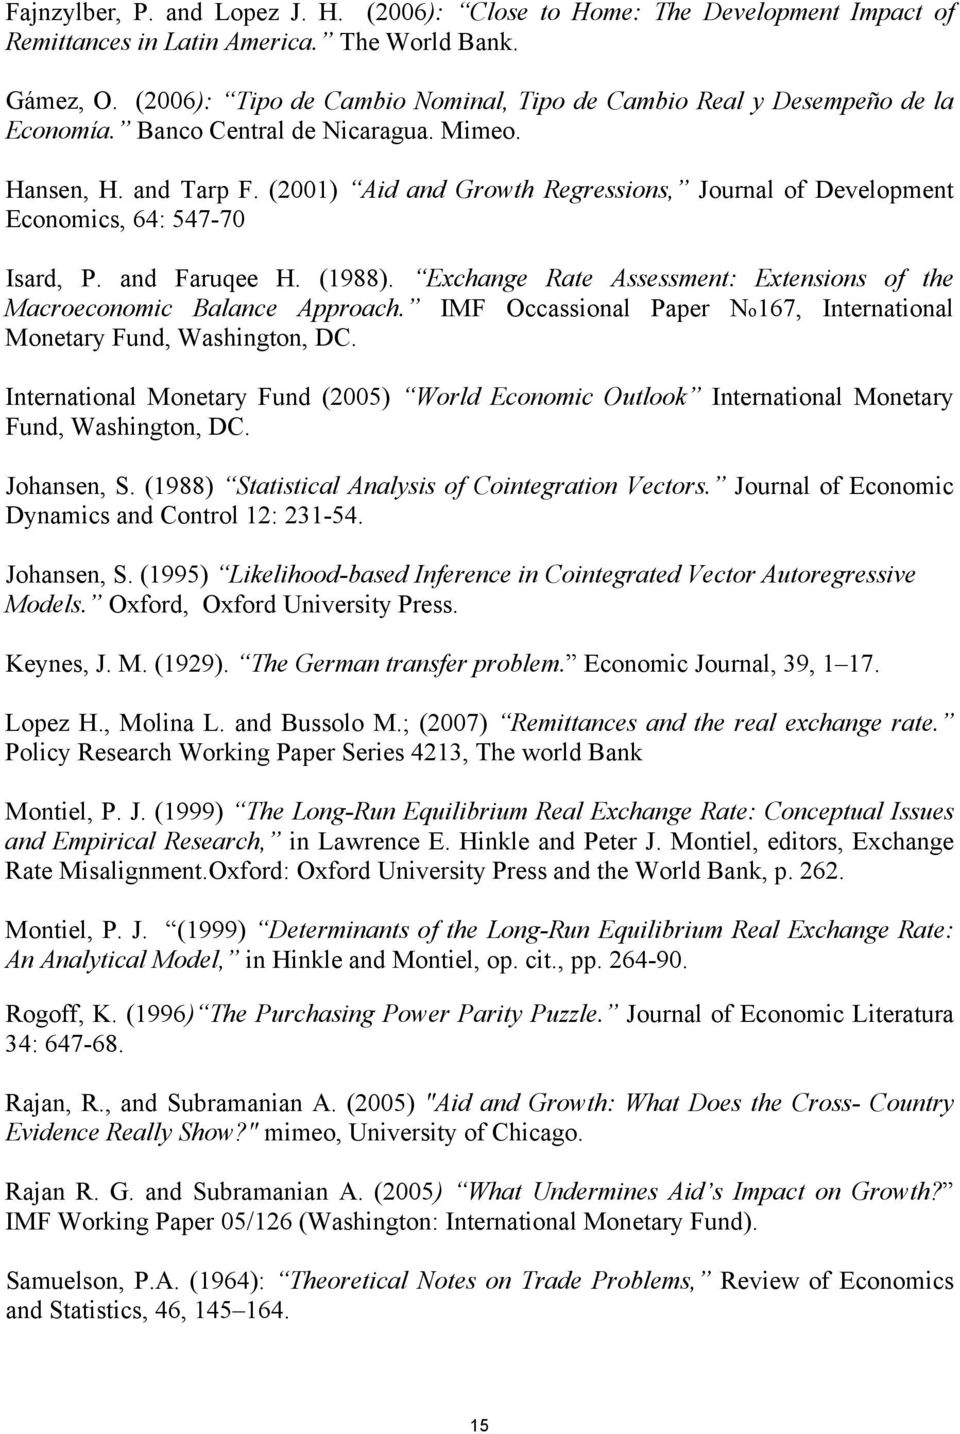 (2001) Aid and Growth Regressions, Journal of Development Economics, 64: 547-70 Isard, P. and Faruqee H. (1988). Exchange Rate Assessment: Extensions of the Macroeconomic Balance Approach.